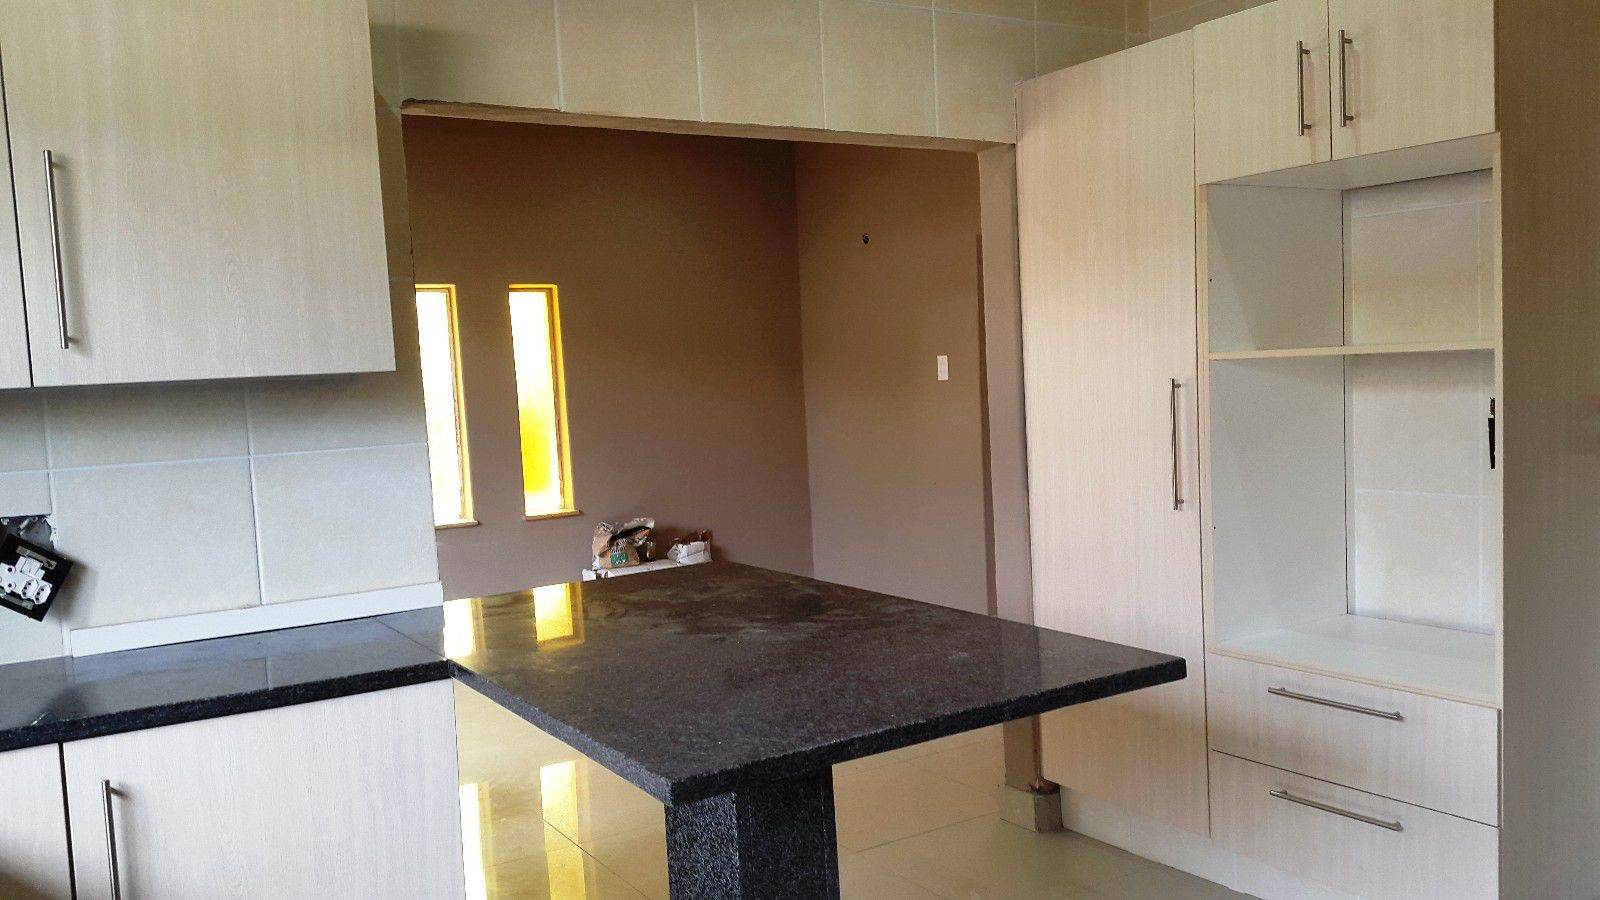 Potchefstroom Central property for sale. Ref No: 13410360. Picture no 11